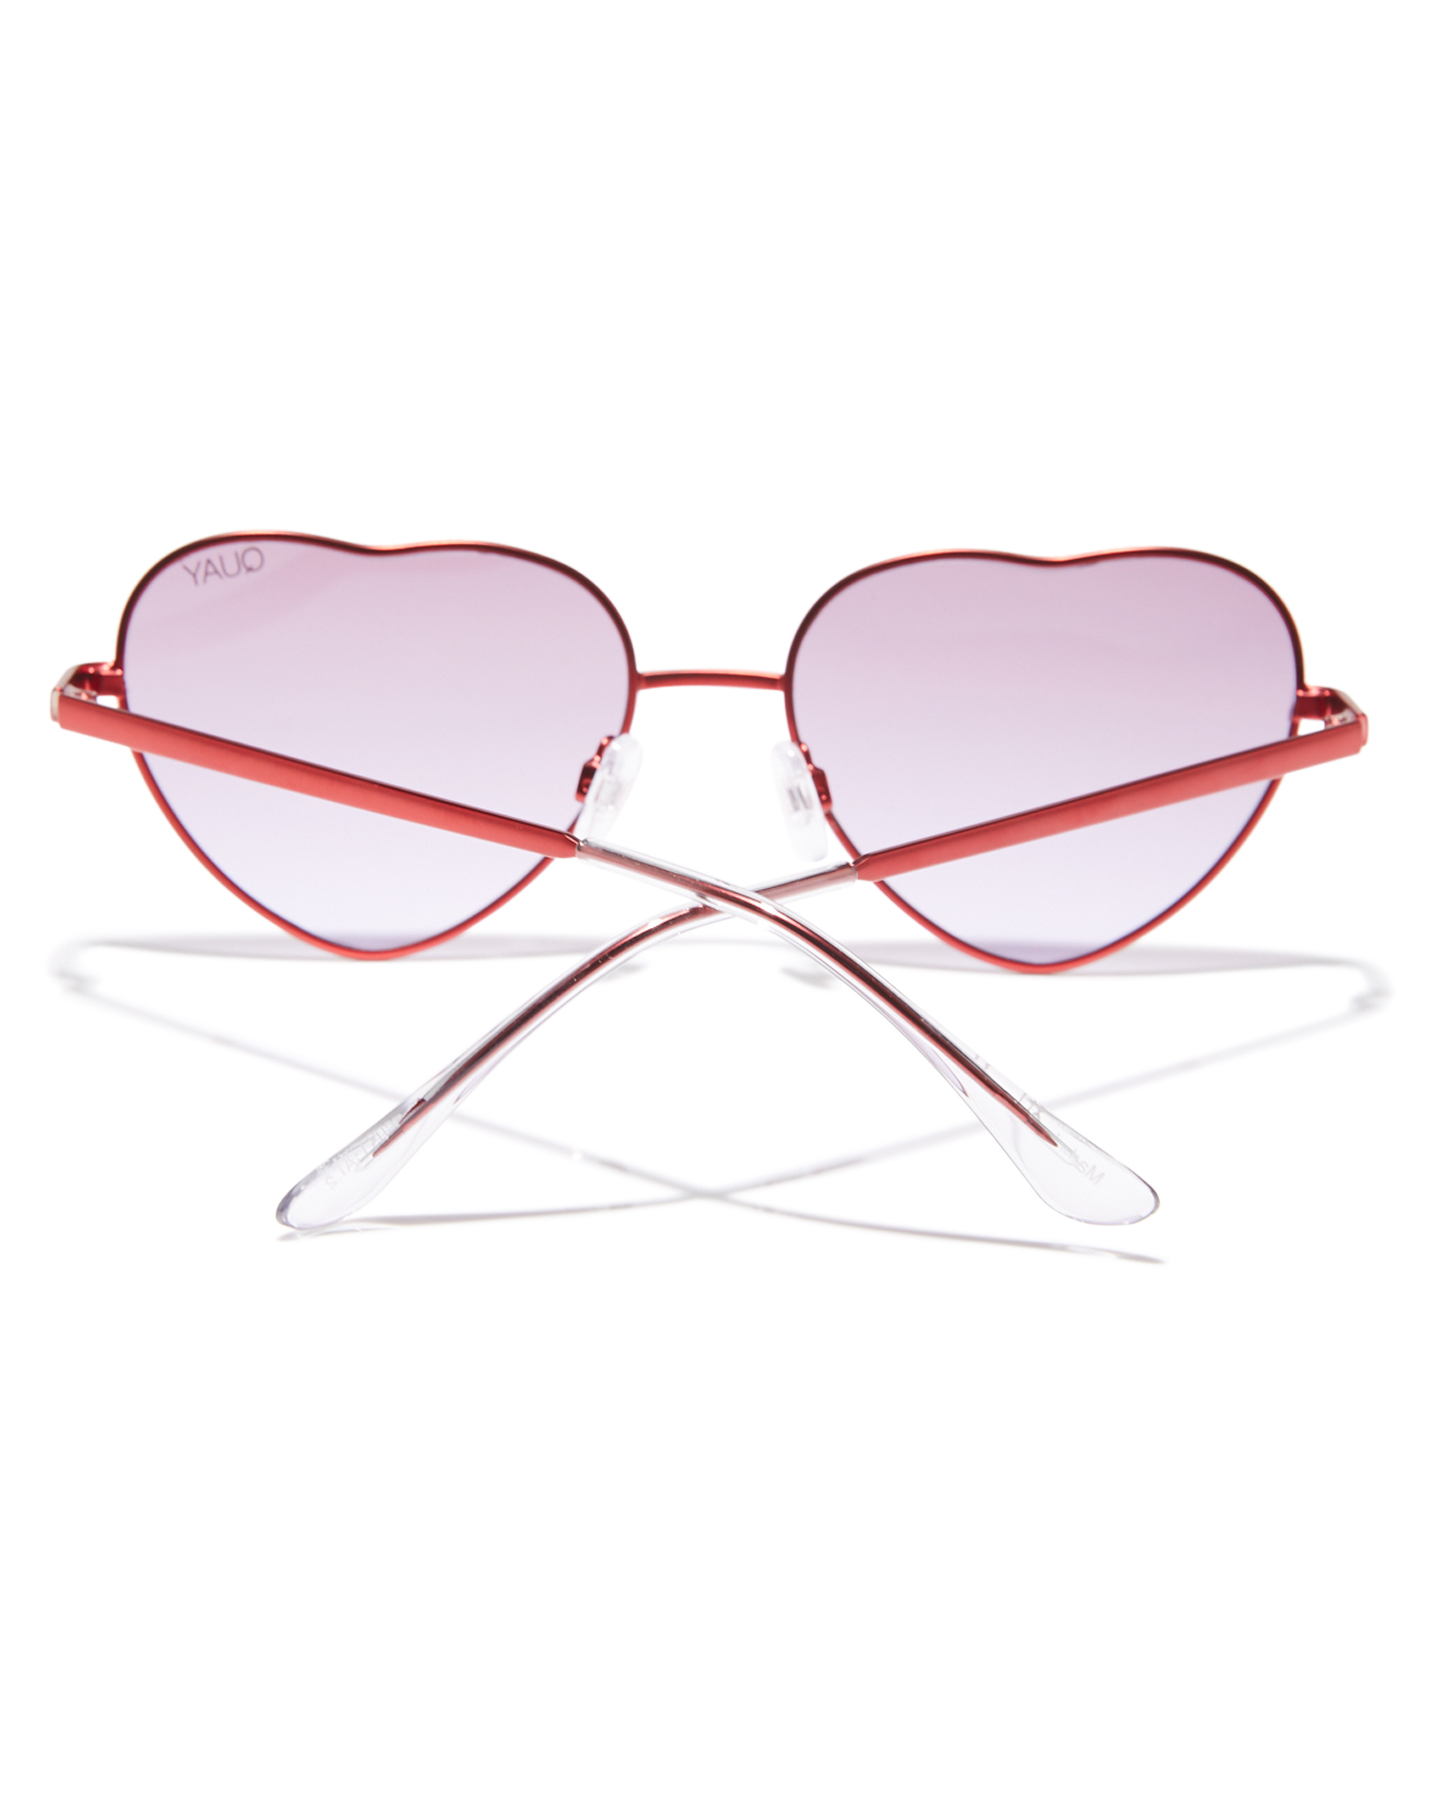 cad642f46a0 New Quay Eyewear Women s X Elle Ferguson Kim Sunglasses Red